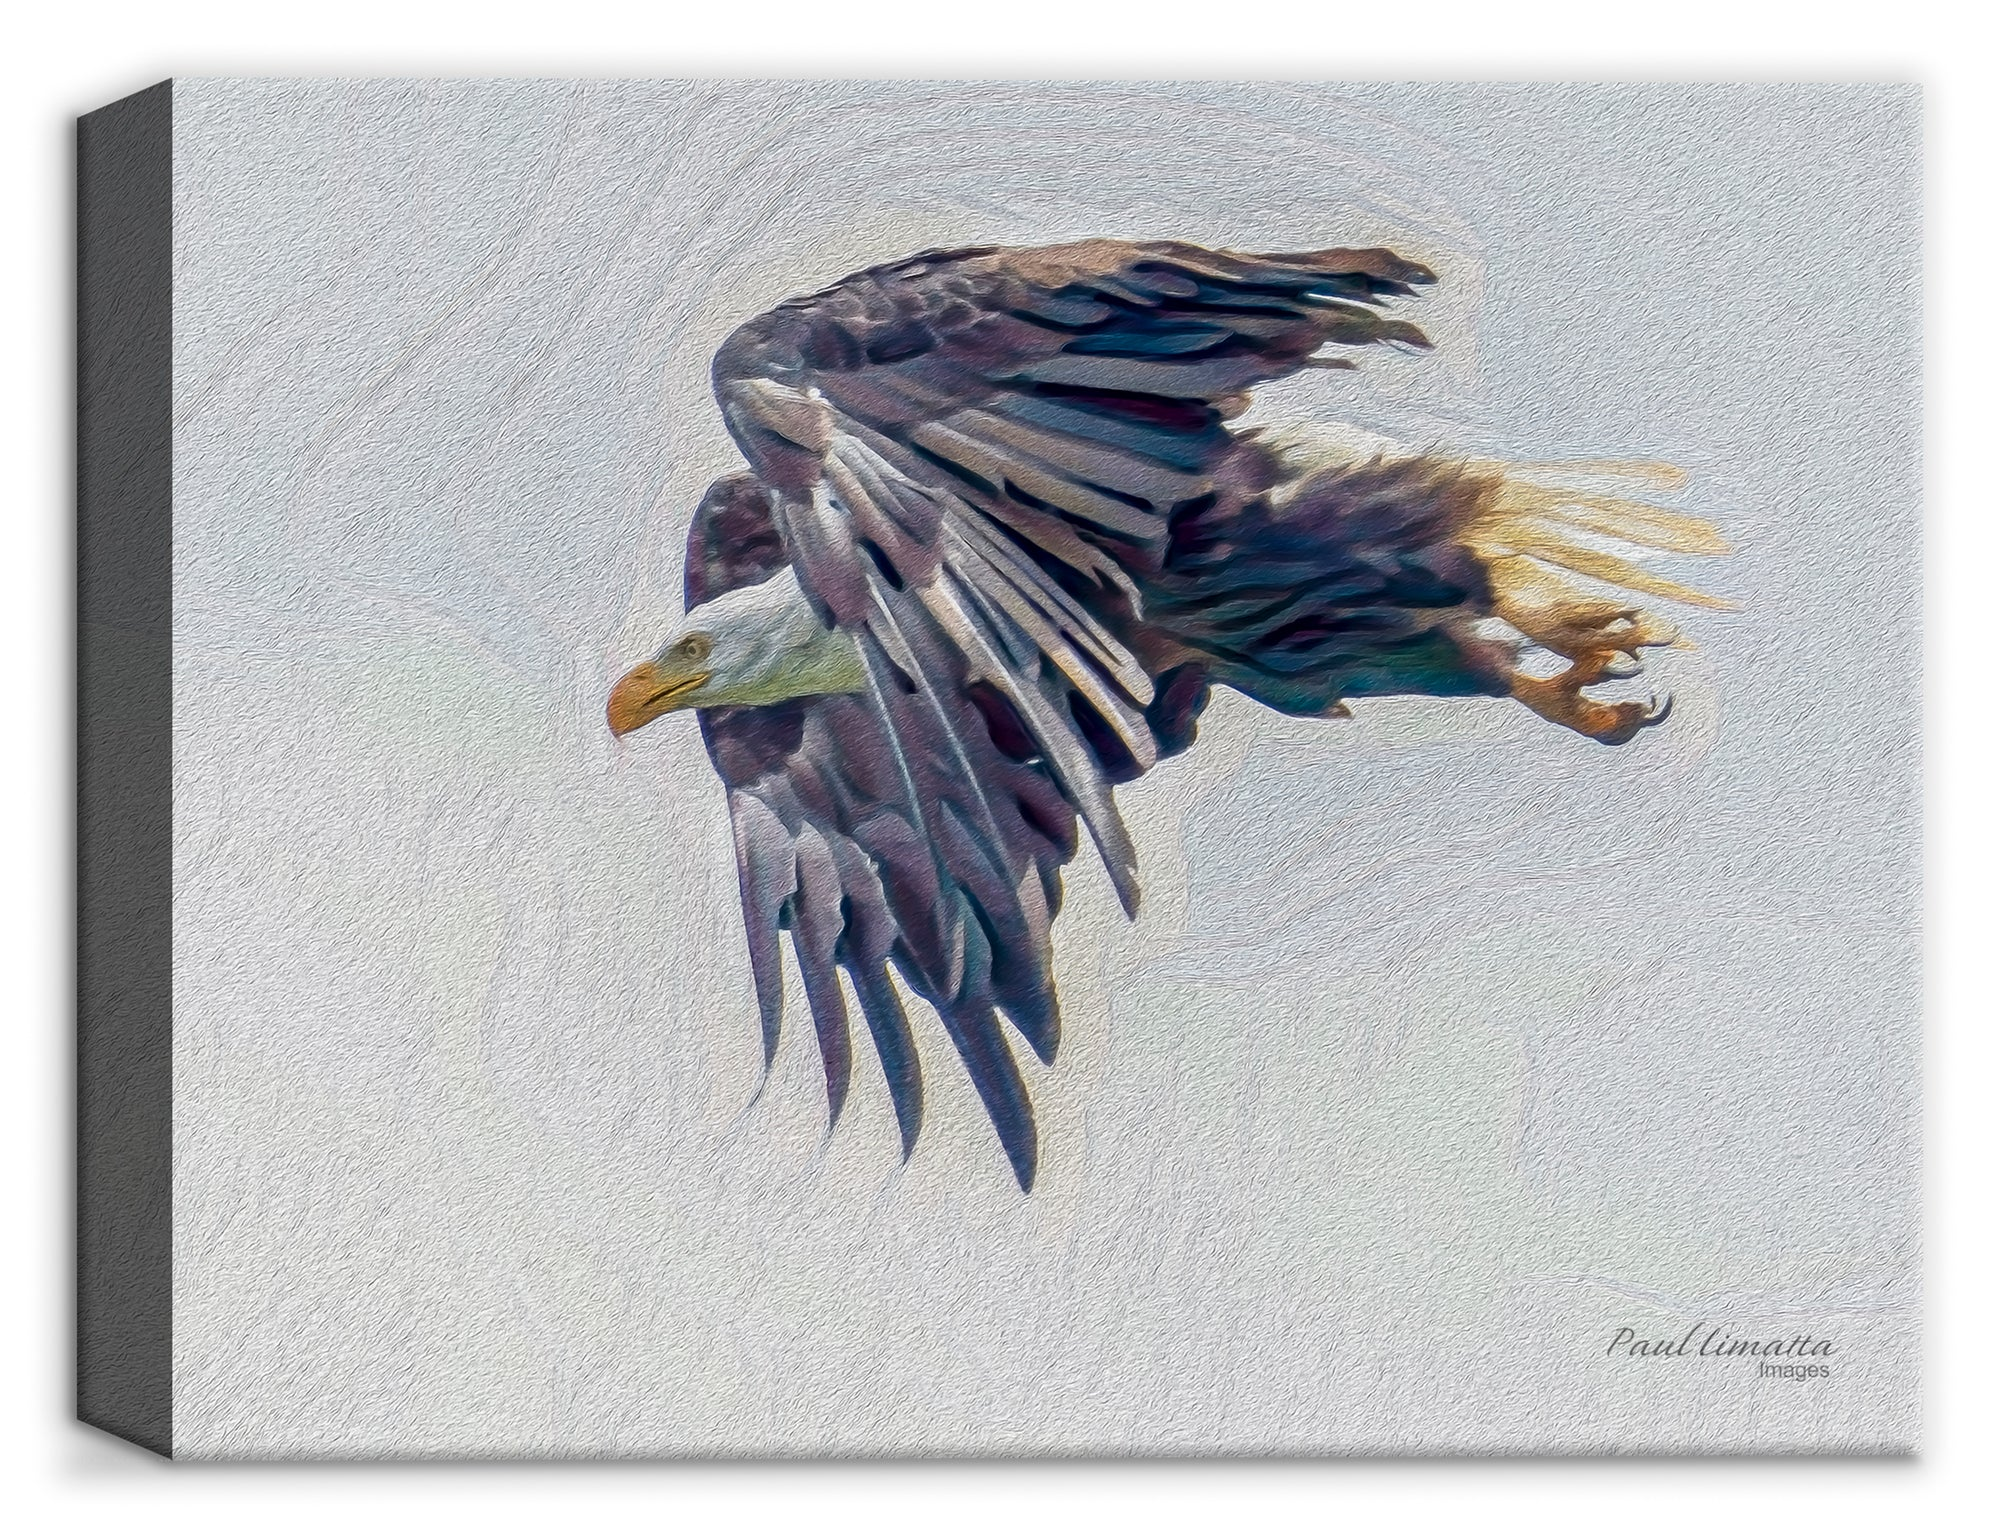 American Bald Eagle - by Paul Limatta